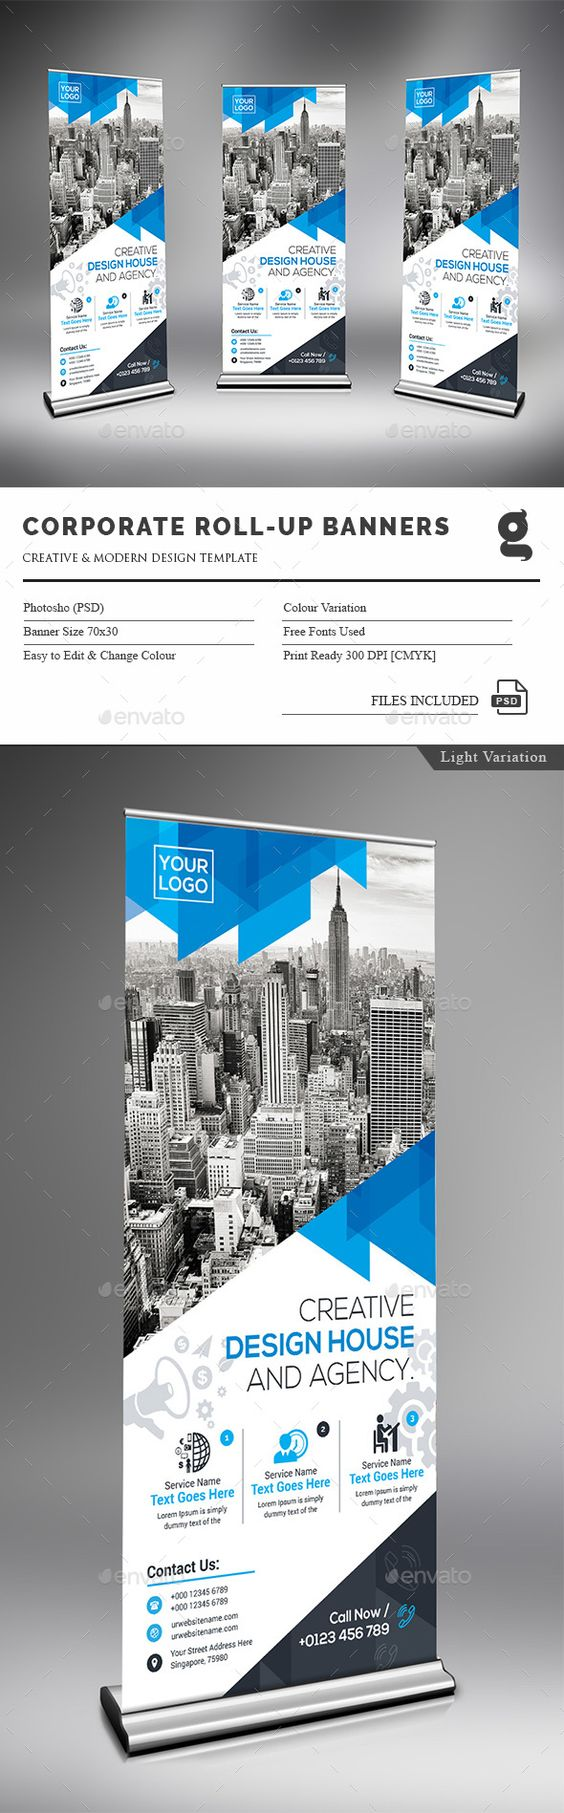 Corporate Rollup Banner Template PSD. Download here: http://graphicriver.net/item/corporate-rollup-banner/15587923?ref=ksioks